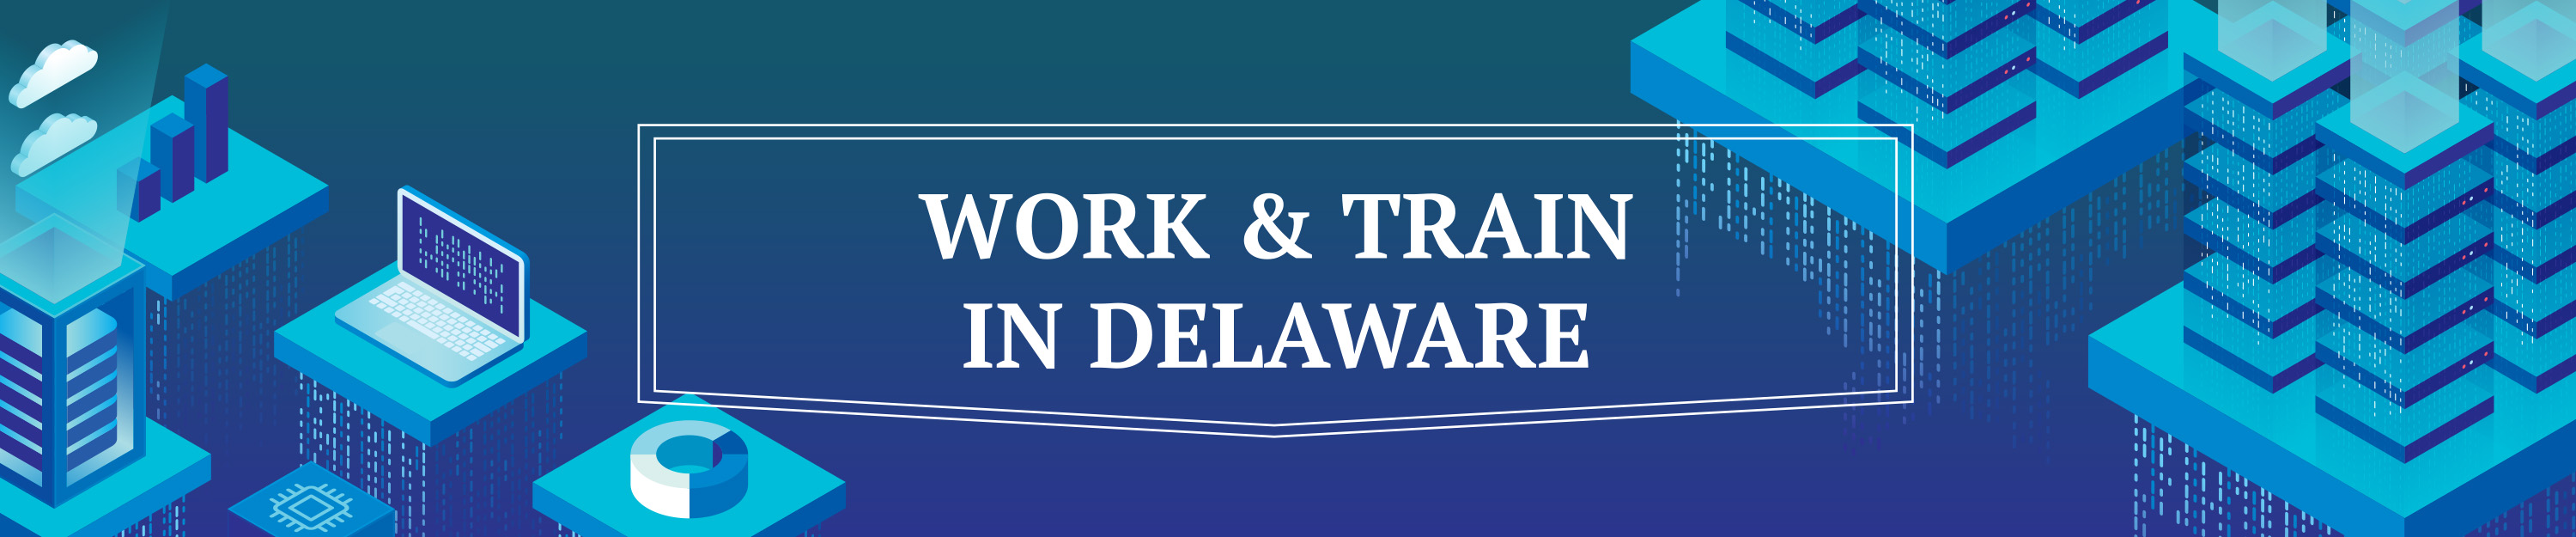 A graphic with symbols representing workign and training in Delaware